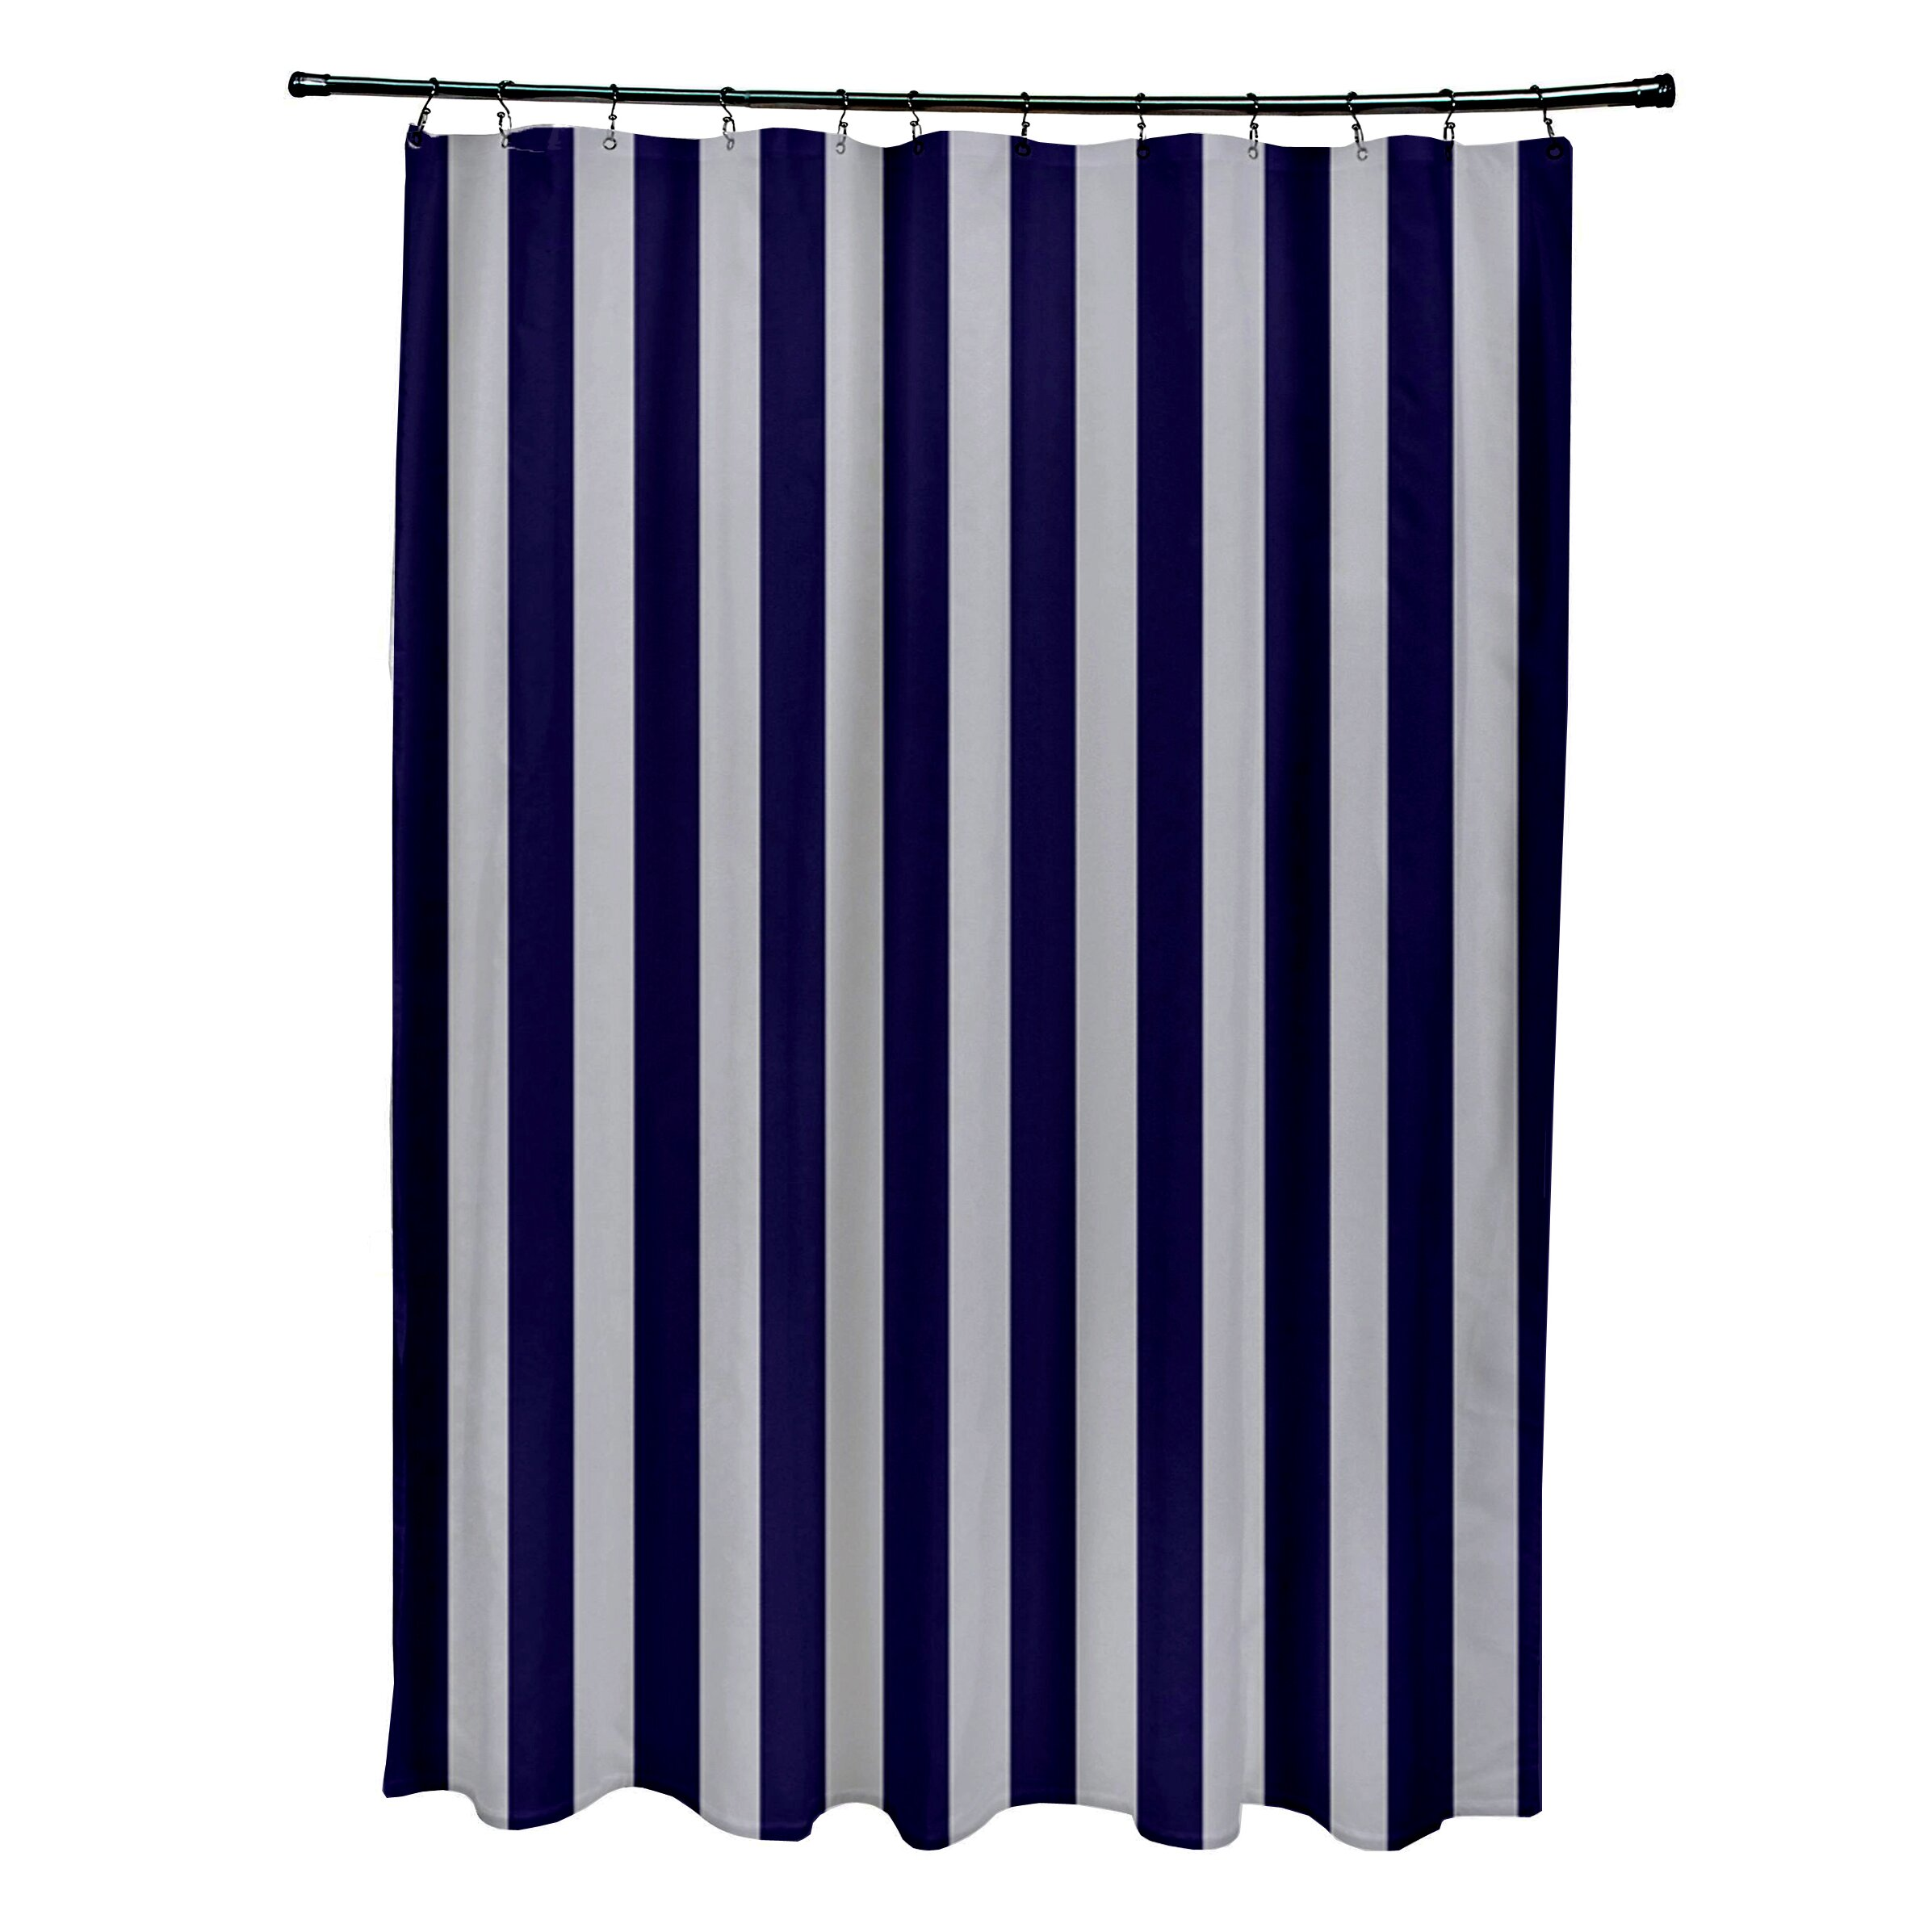 Nautica palmetto bay stripe shower curtain from beddingstyle com - Nautica Palmetto Bay Stripe Shower Curtain From Beddingstyle Com Shower Curtains Stripped Shower Curtains By